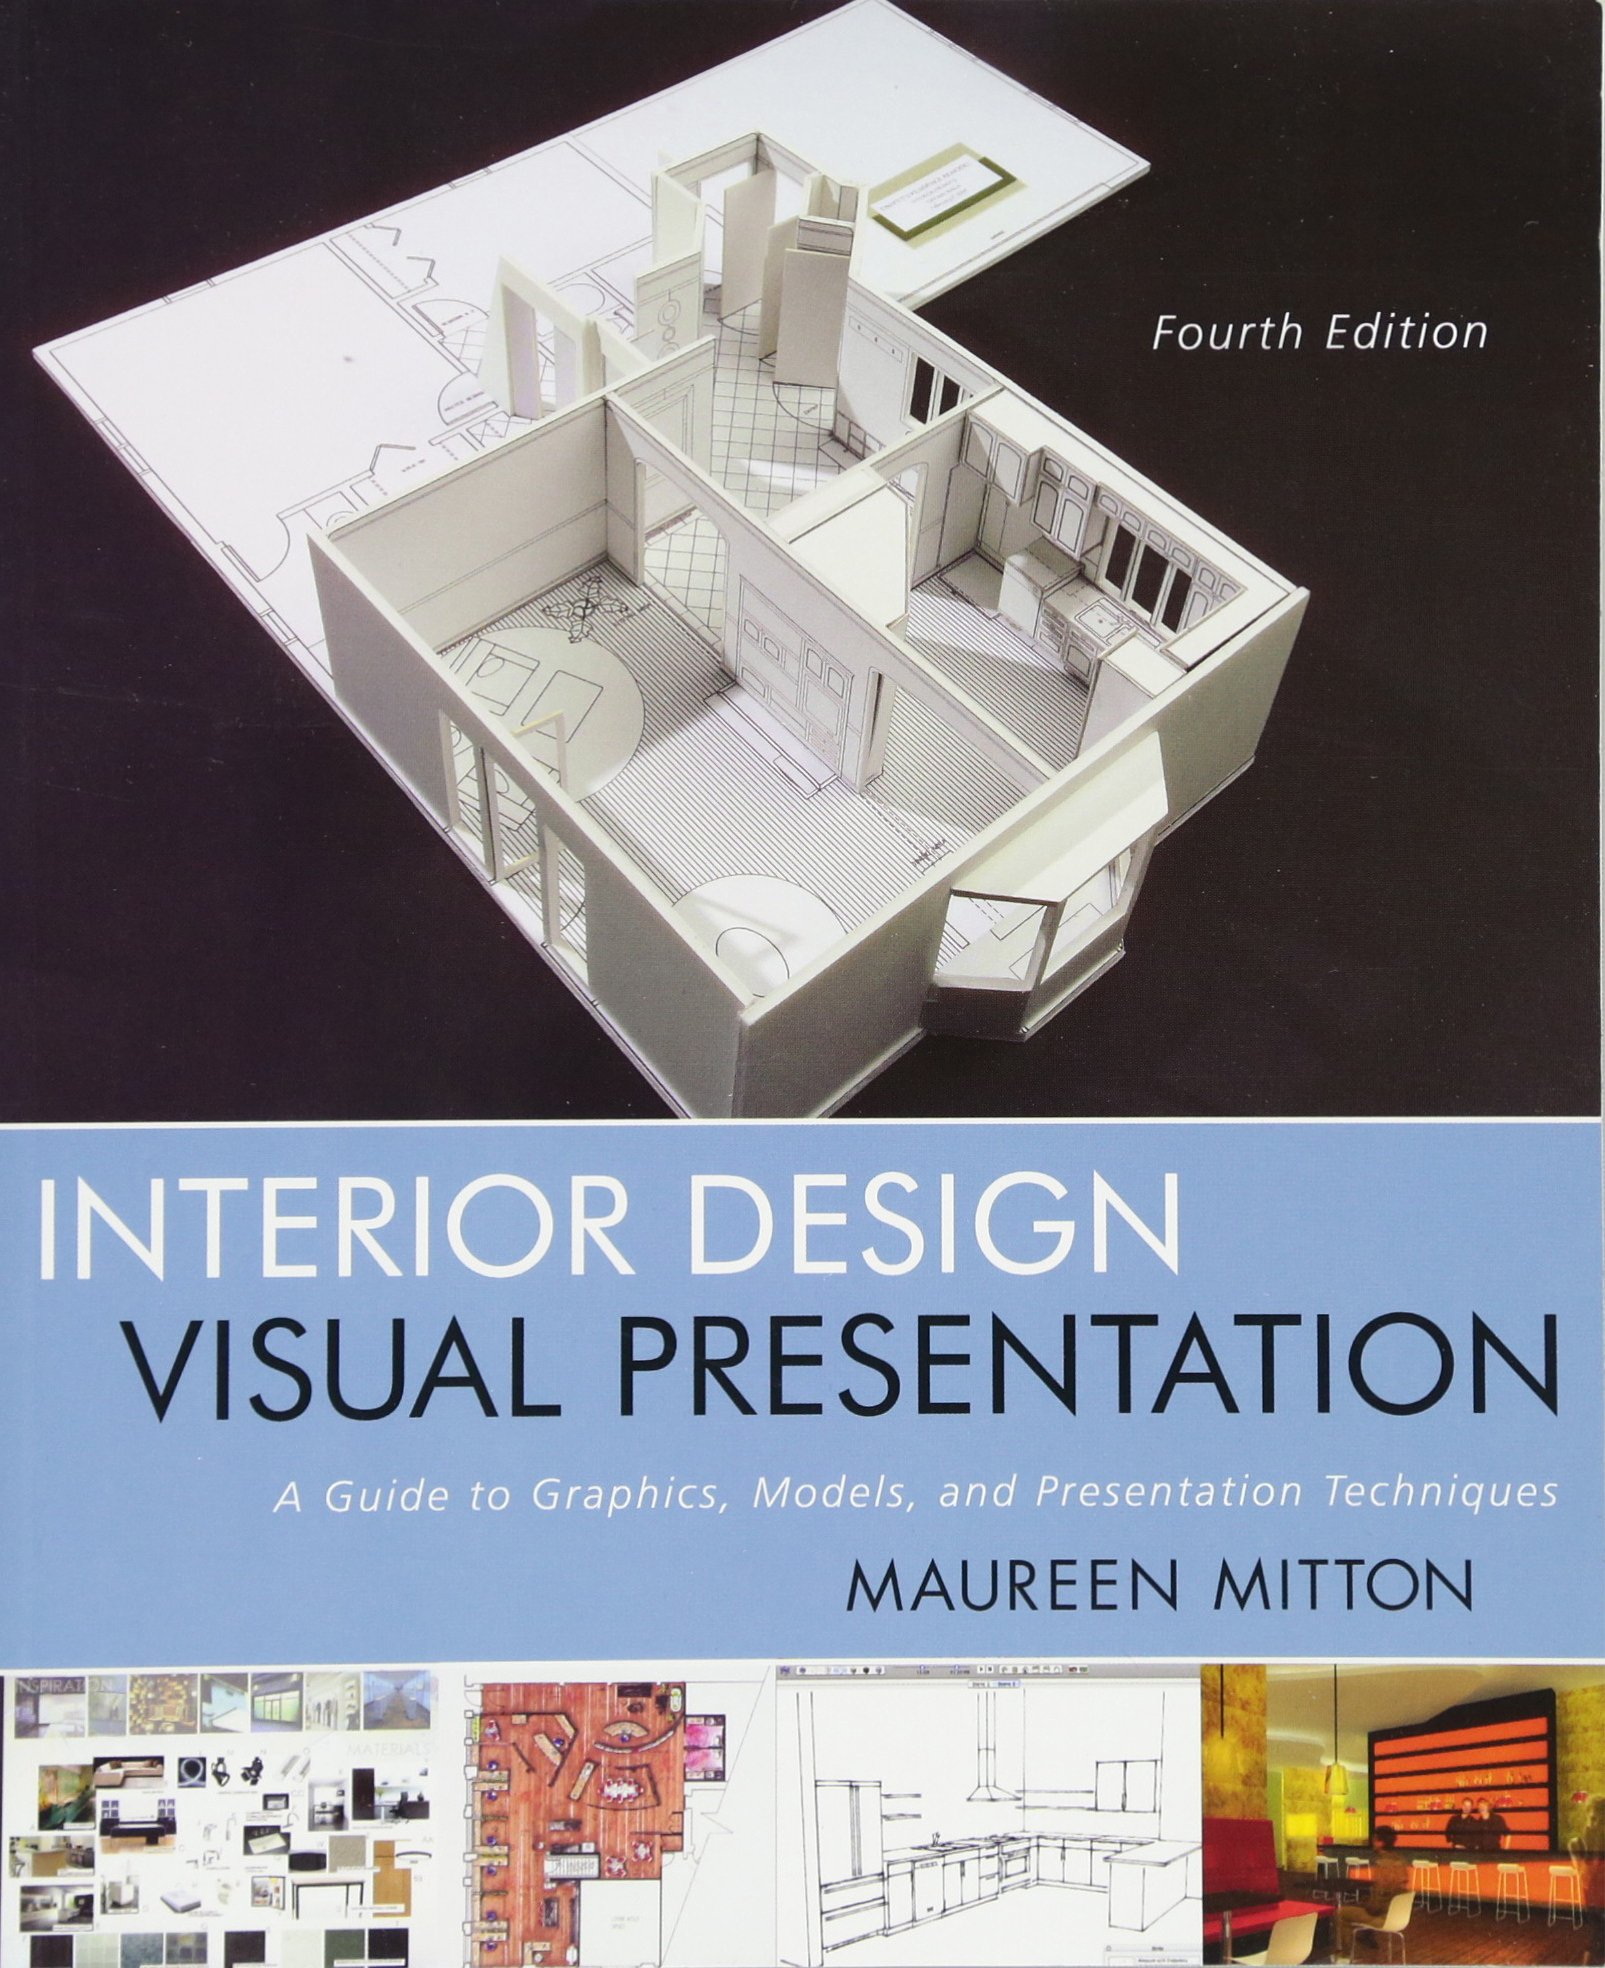 gallery ogt manual interior ebook images design edition reference